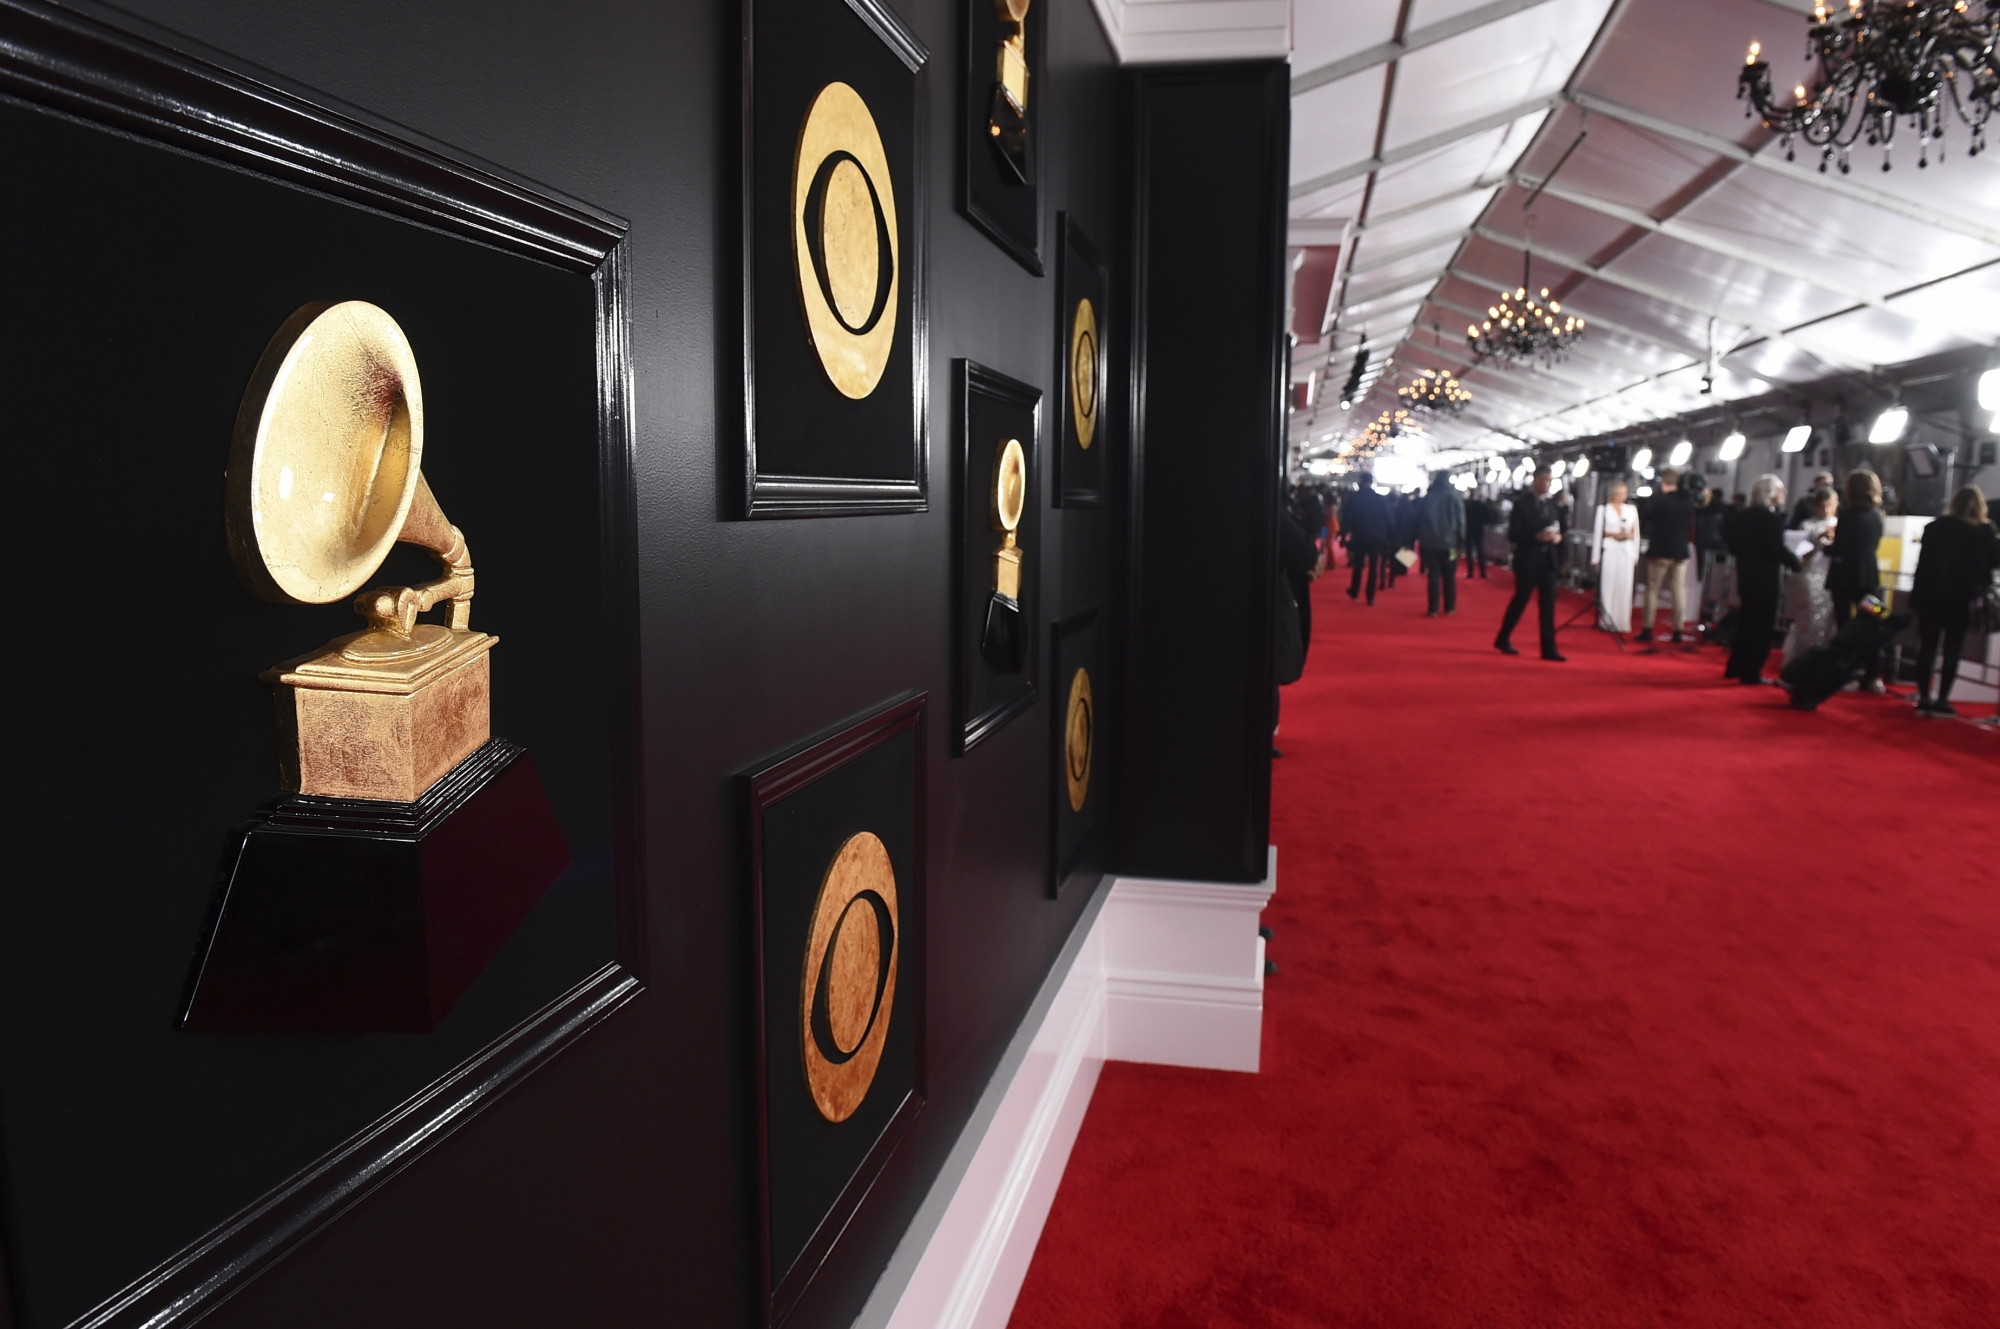 Grammy Awards 2019: The Latest: Collaborators: No Word From Glover On Grammys